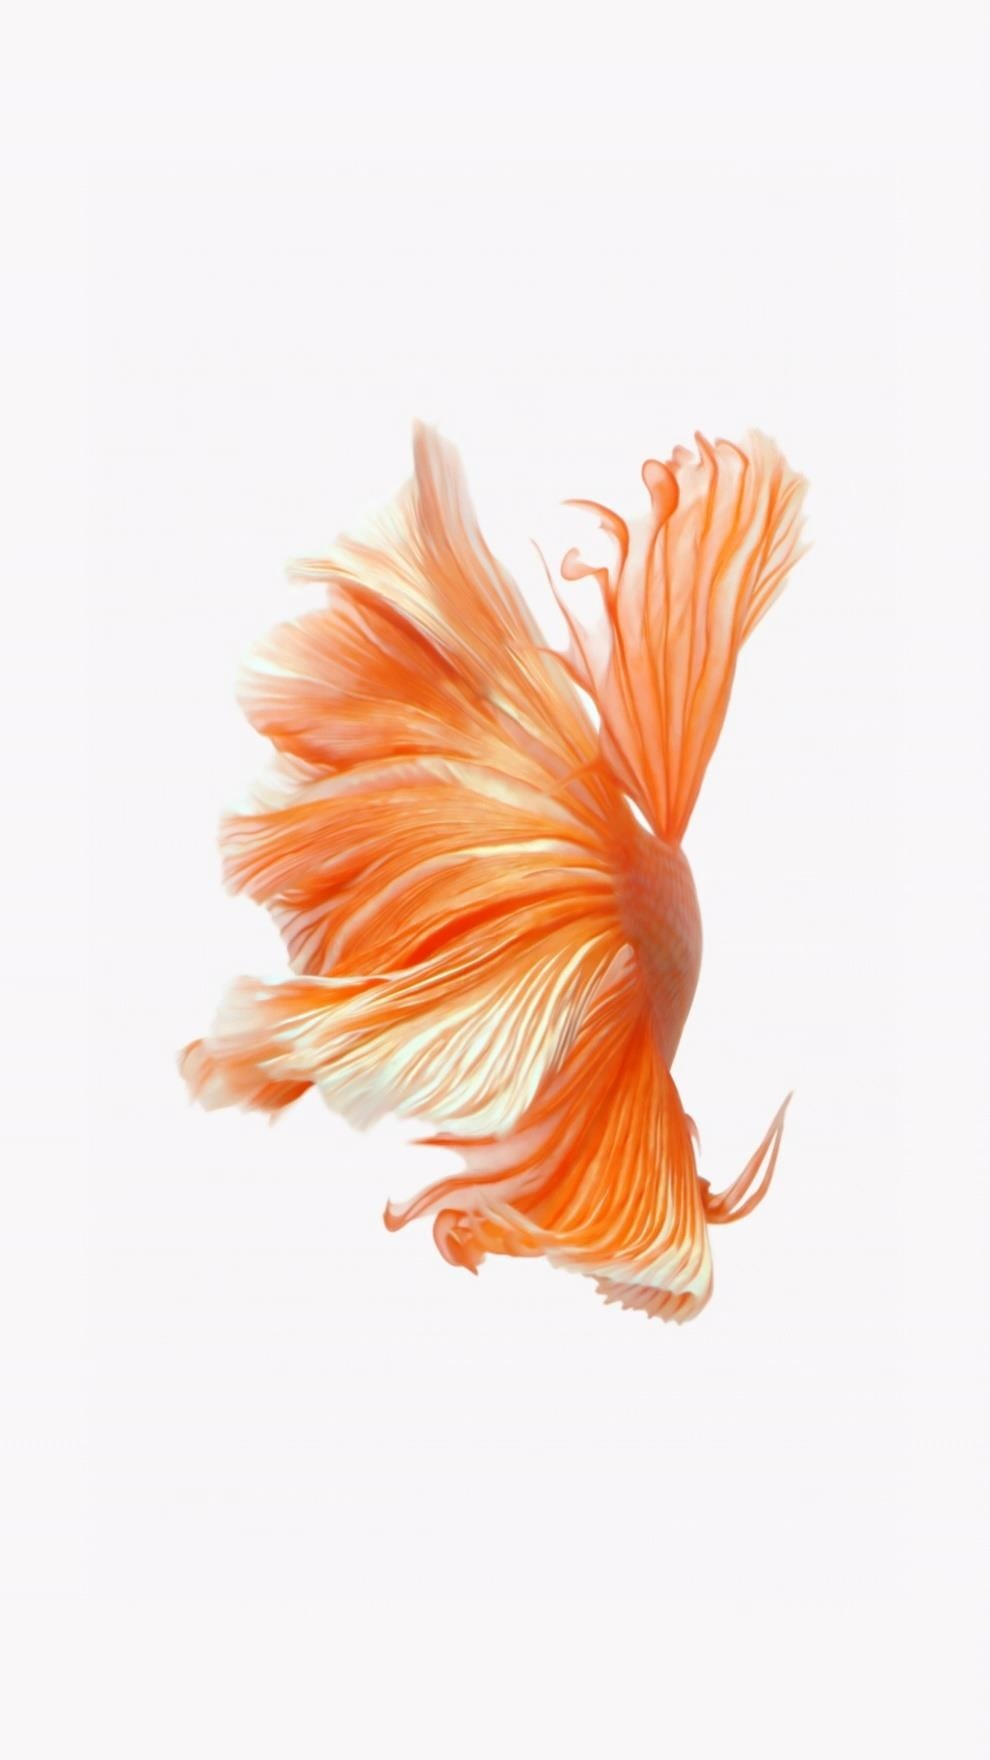 Apple Clownfish Wallpaper Iphone X Fish Iphone Wallpaper Hd Impremedia Net